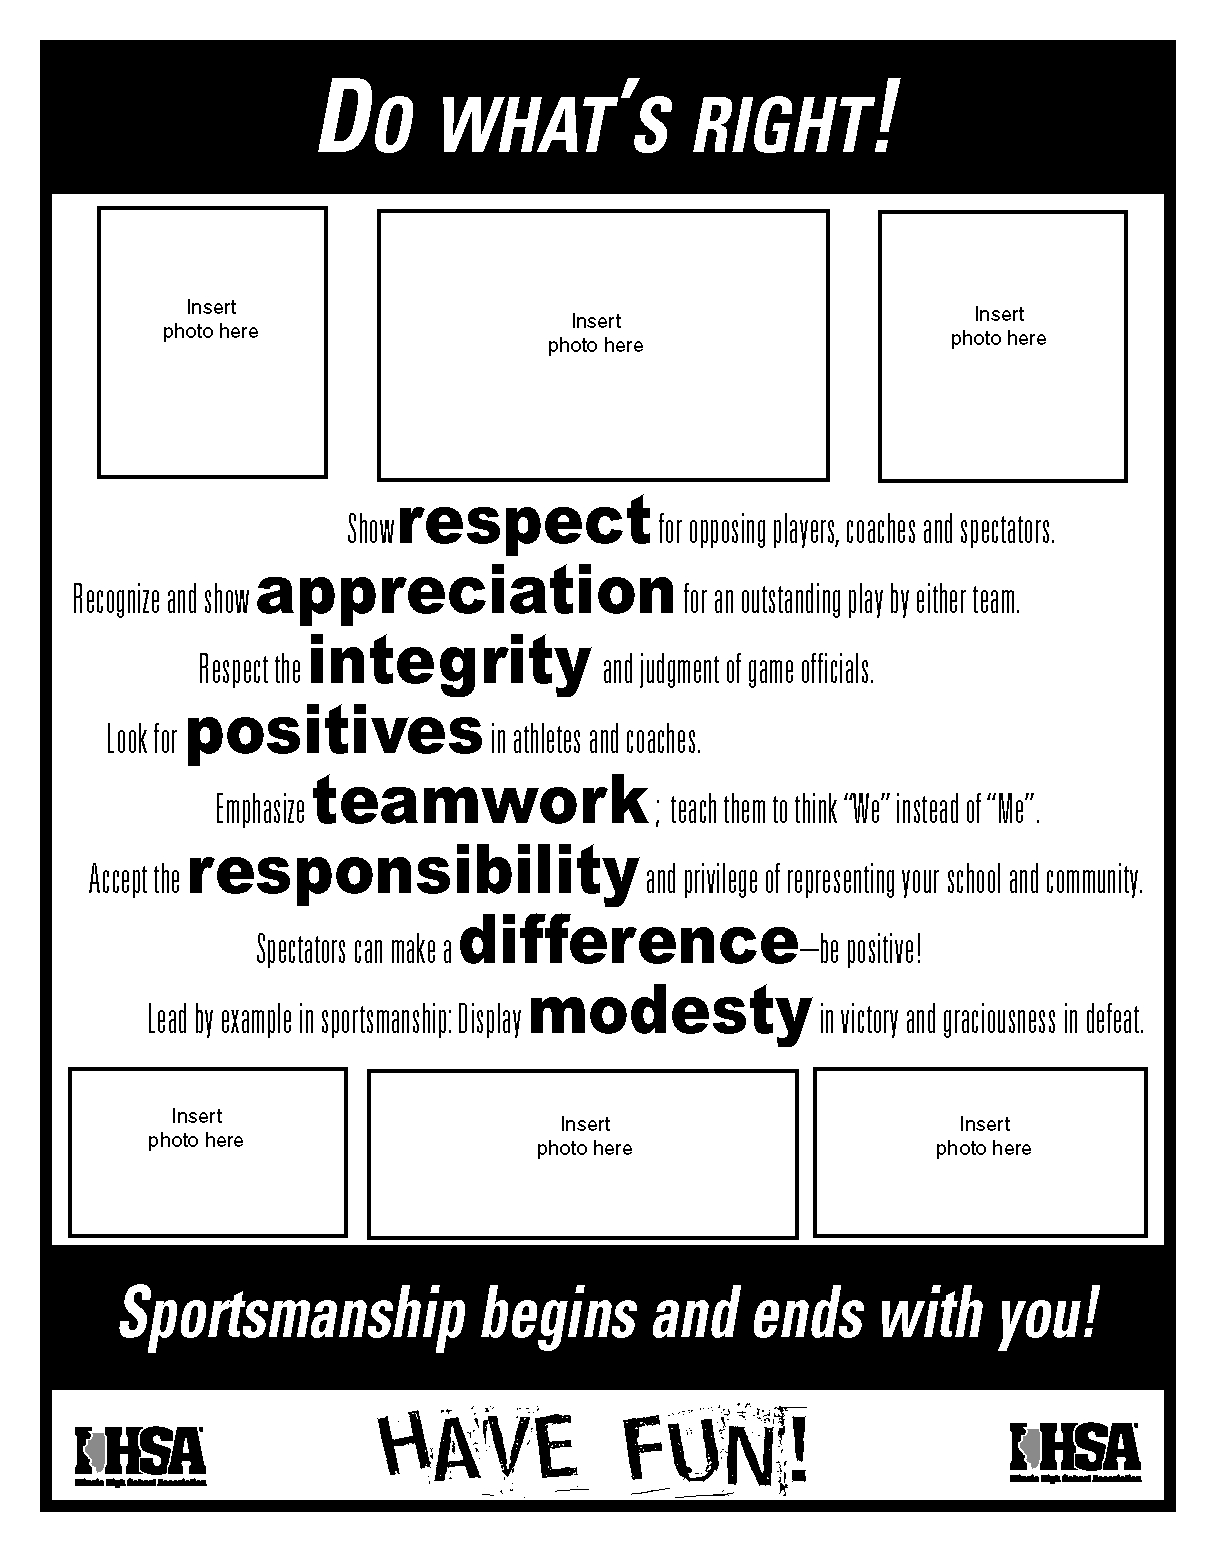 Do What's Right! | Sportsmanship | Resources | IHSA